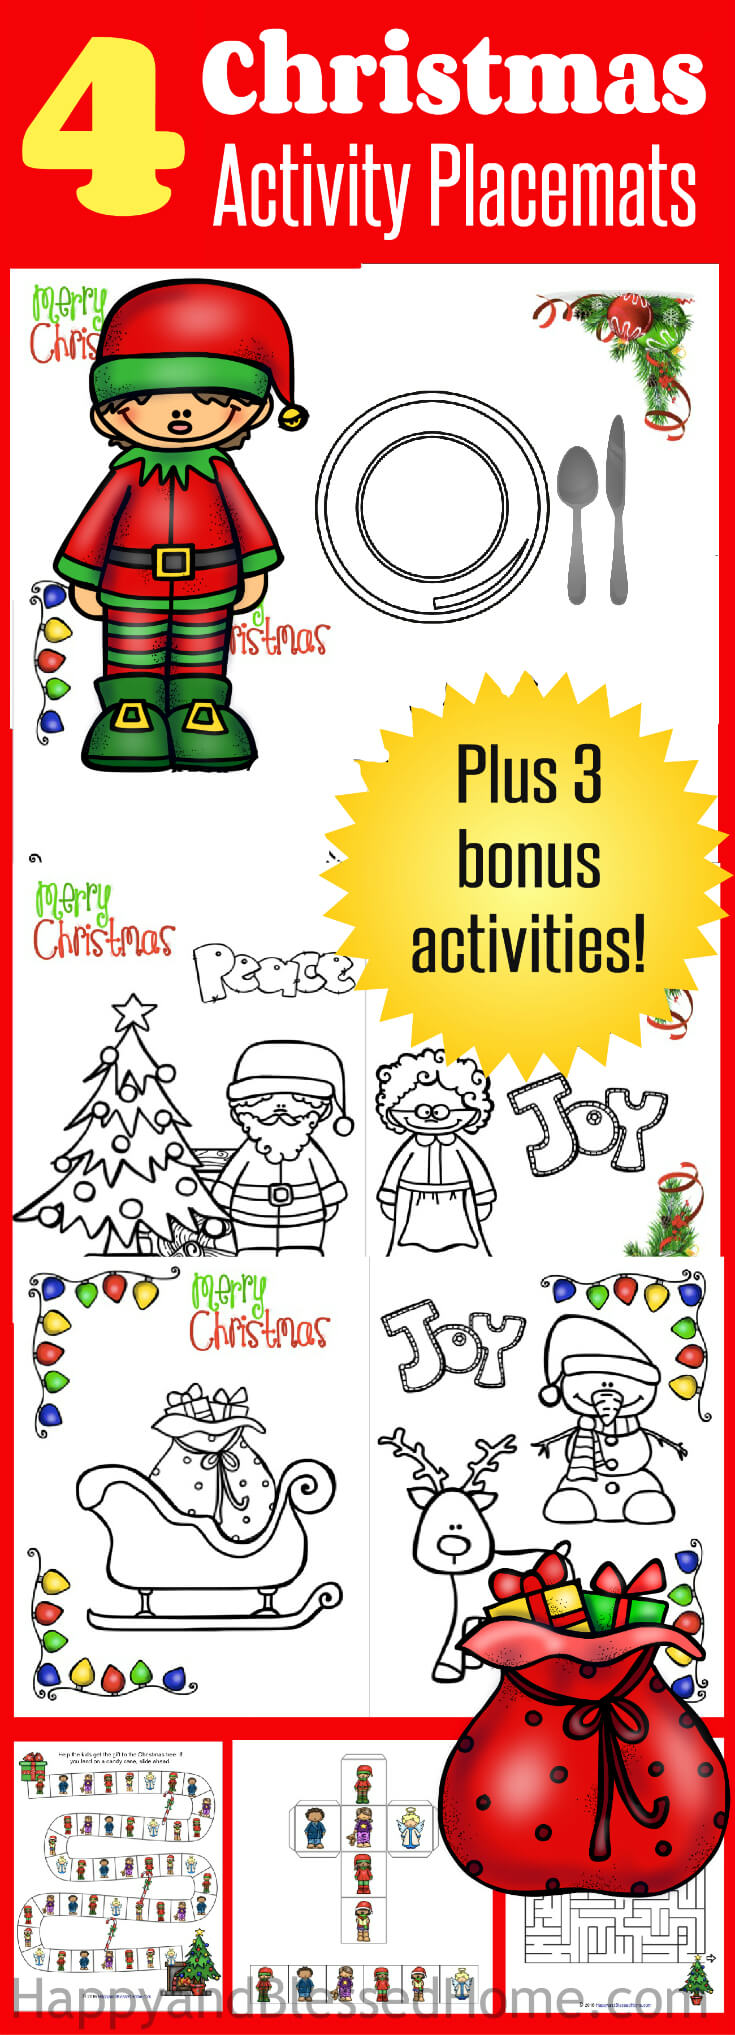 new-4-christmas-activity-placemats-plus-3-bonus-activities